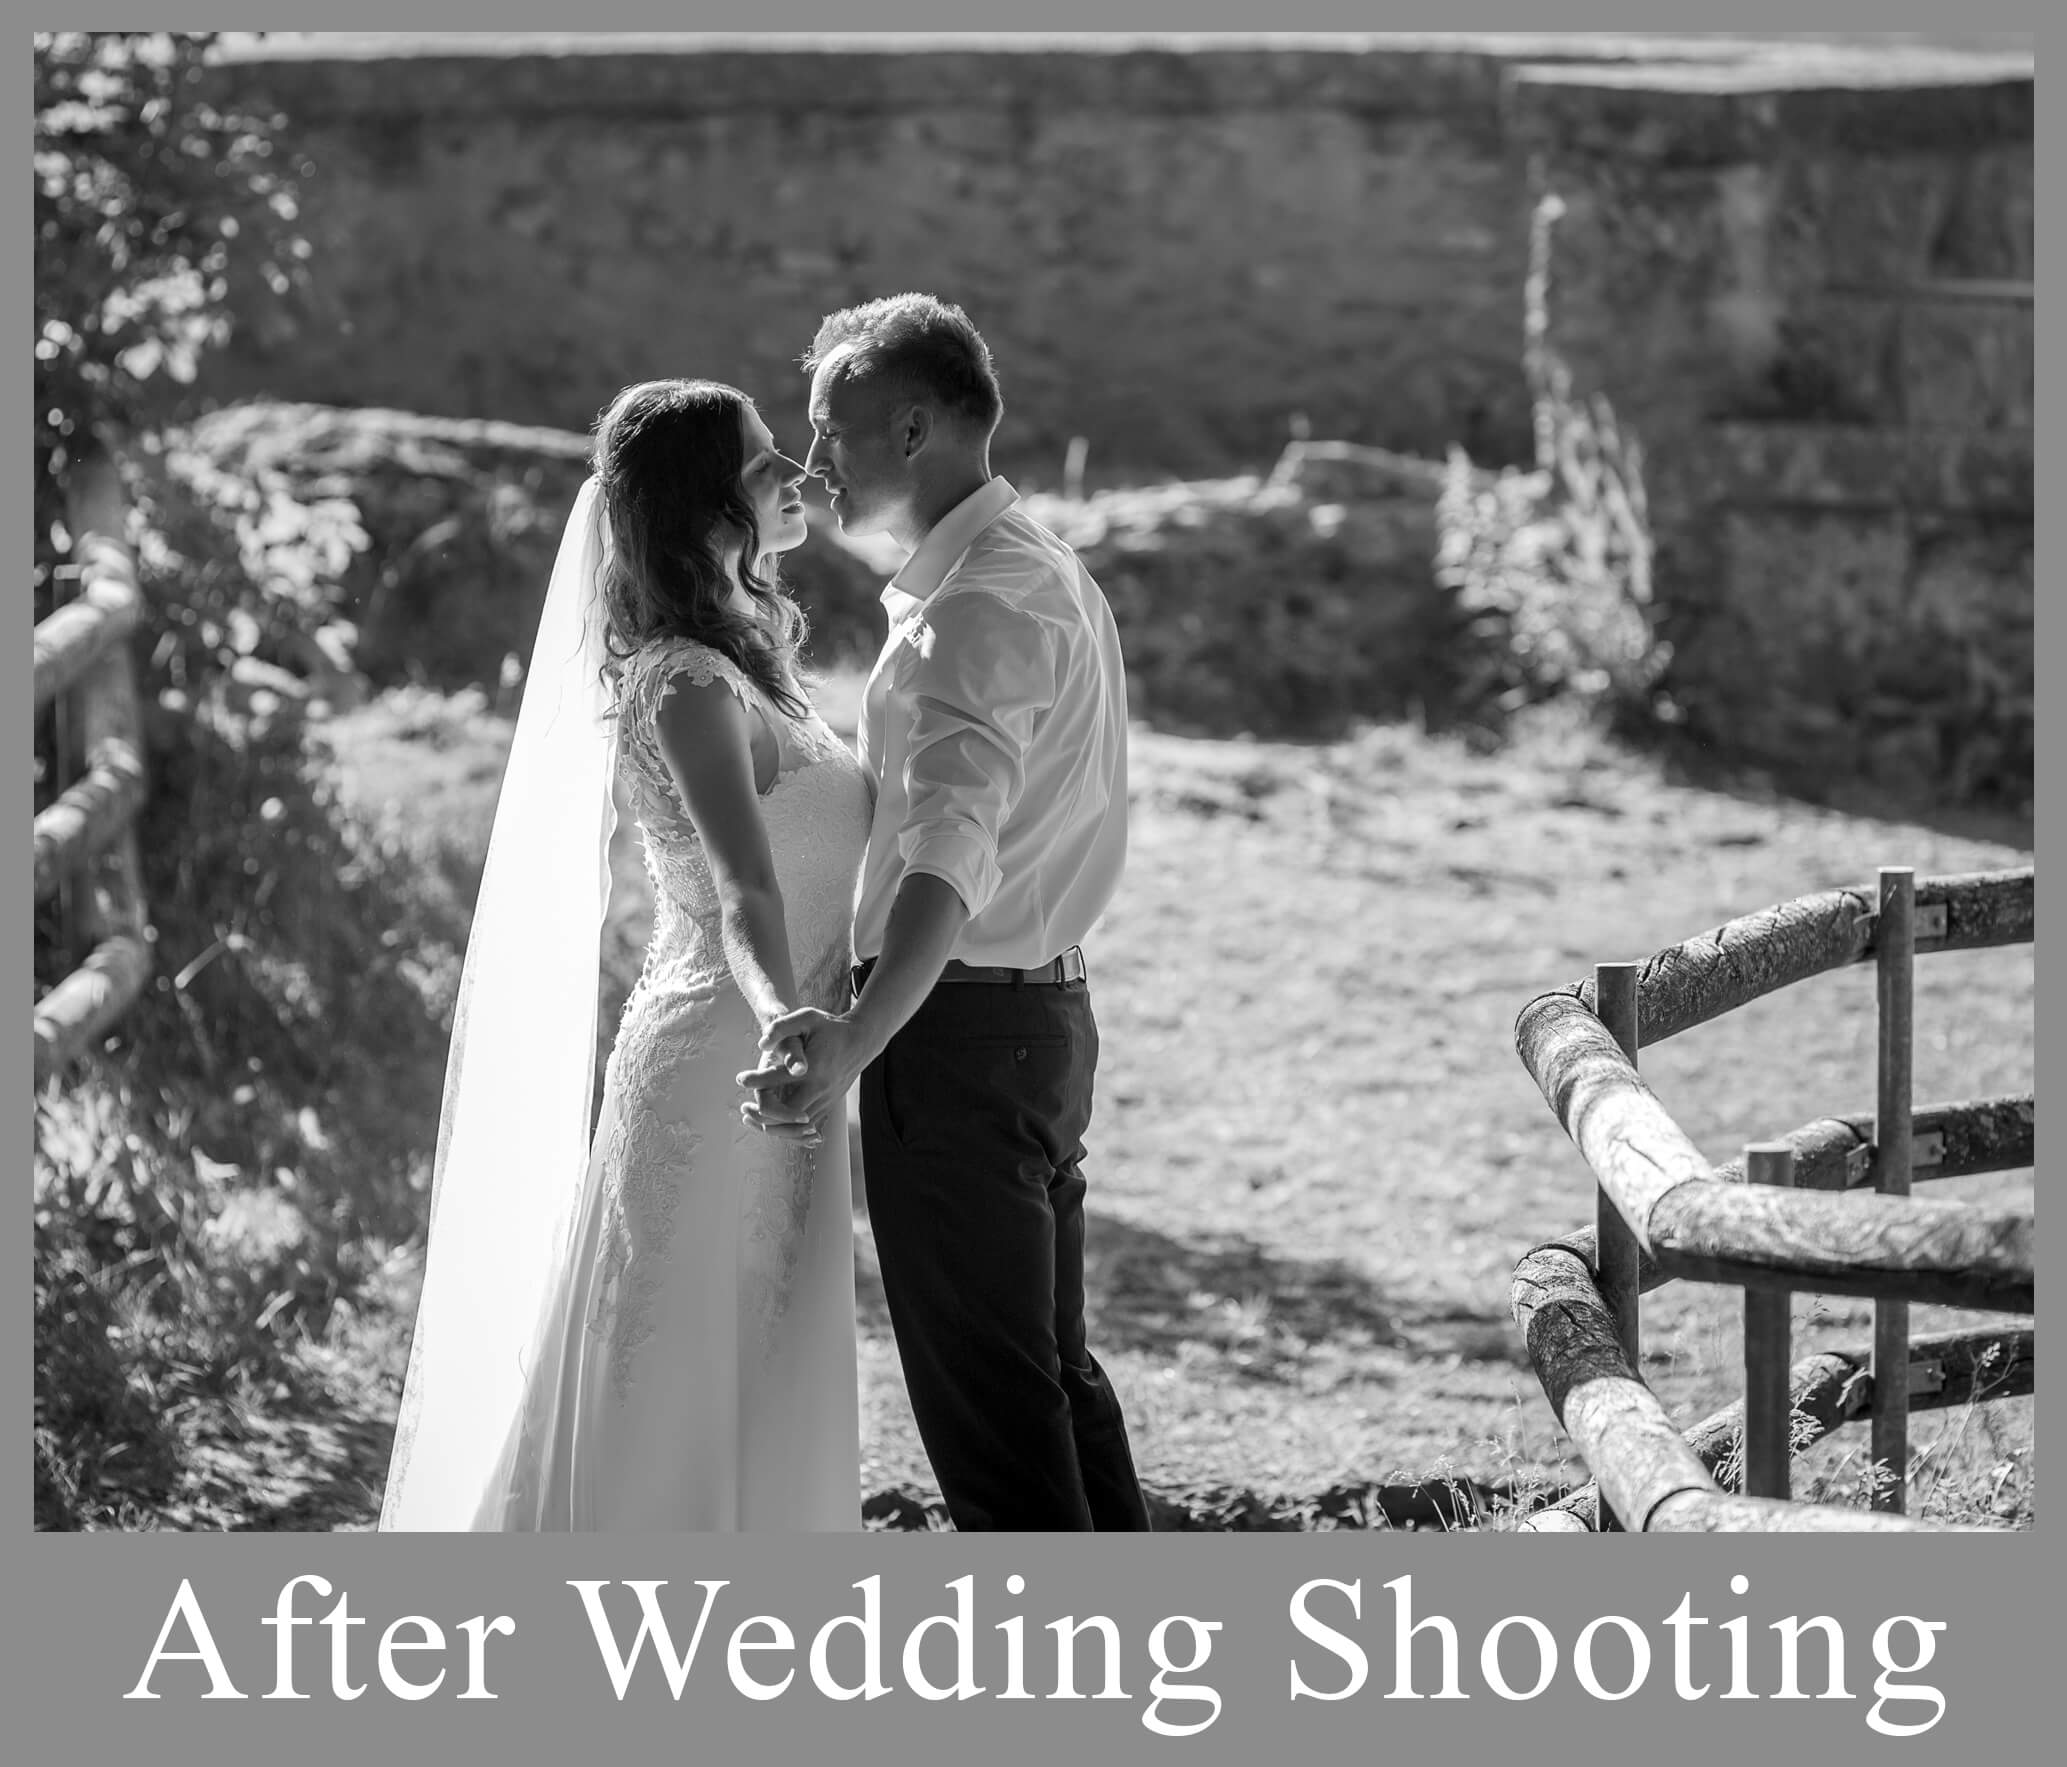 After Weddingshooting